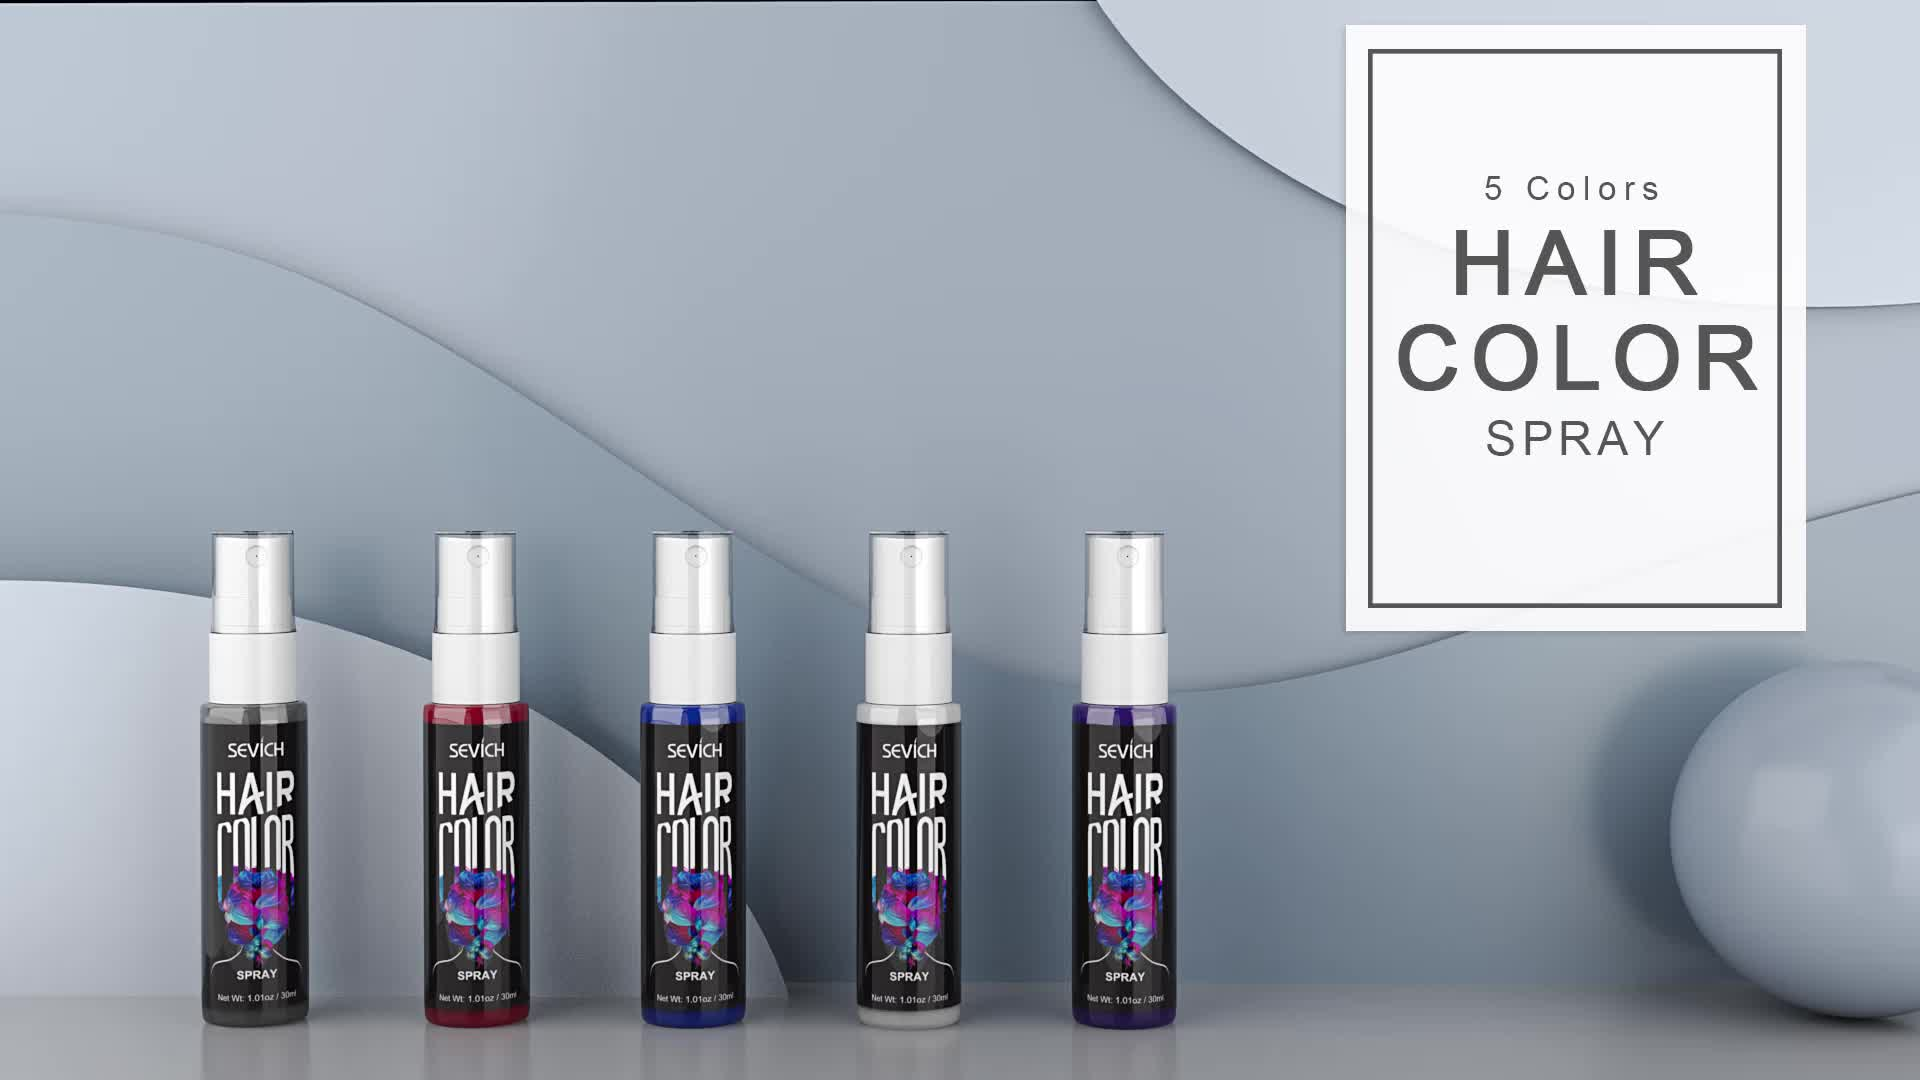 Manufacturer Daily Private Label Hair Dye Nourishing temporary color hair spray